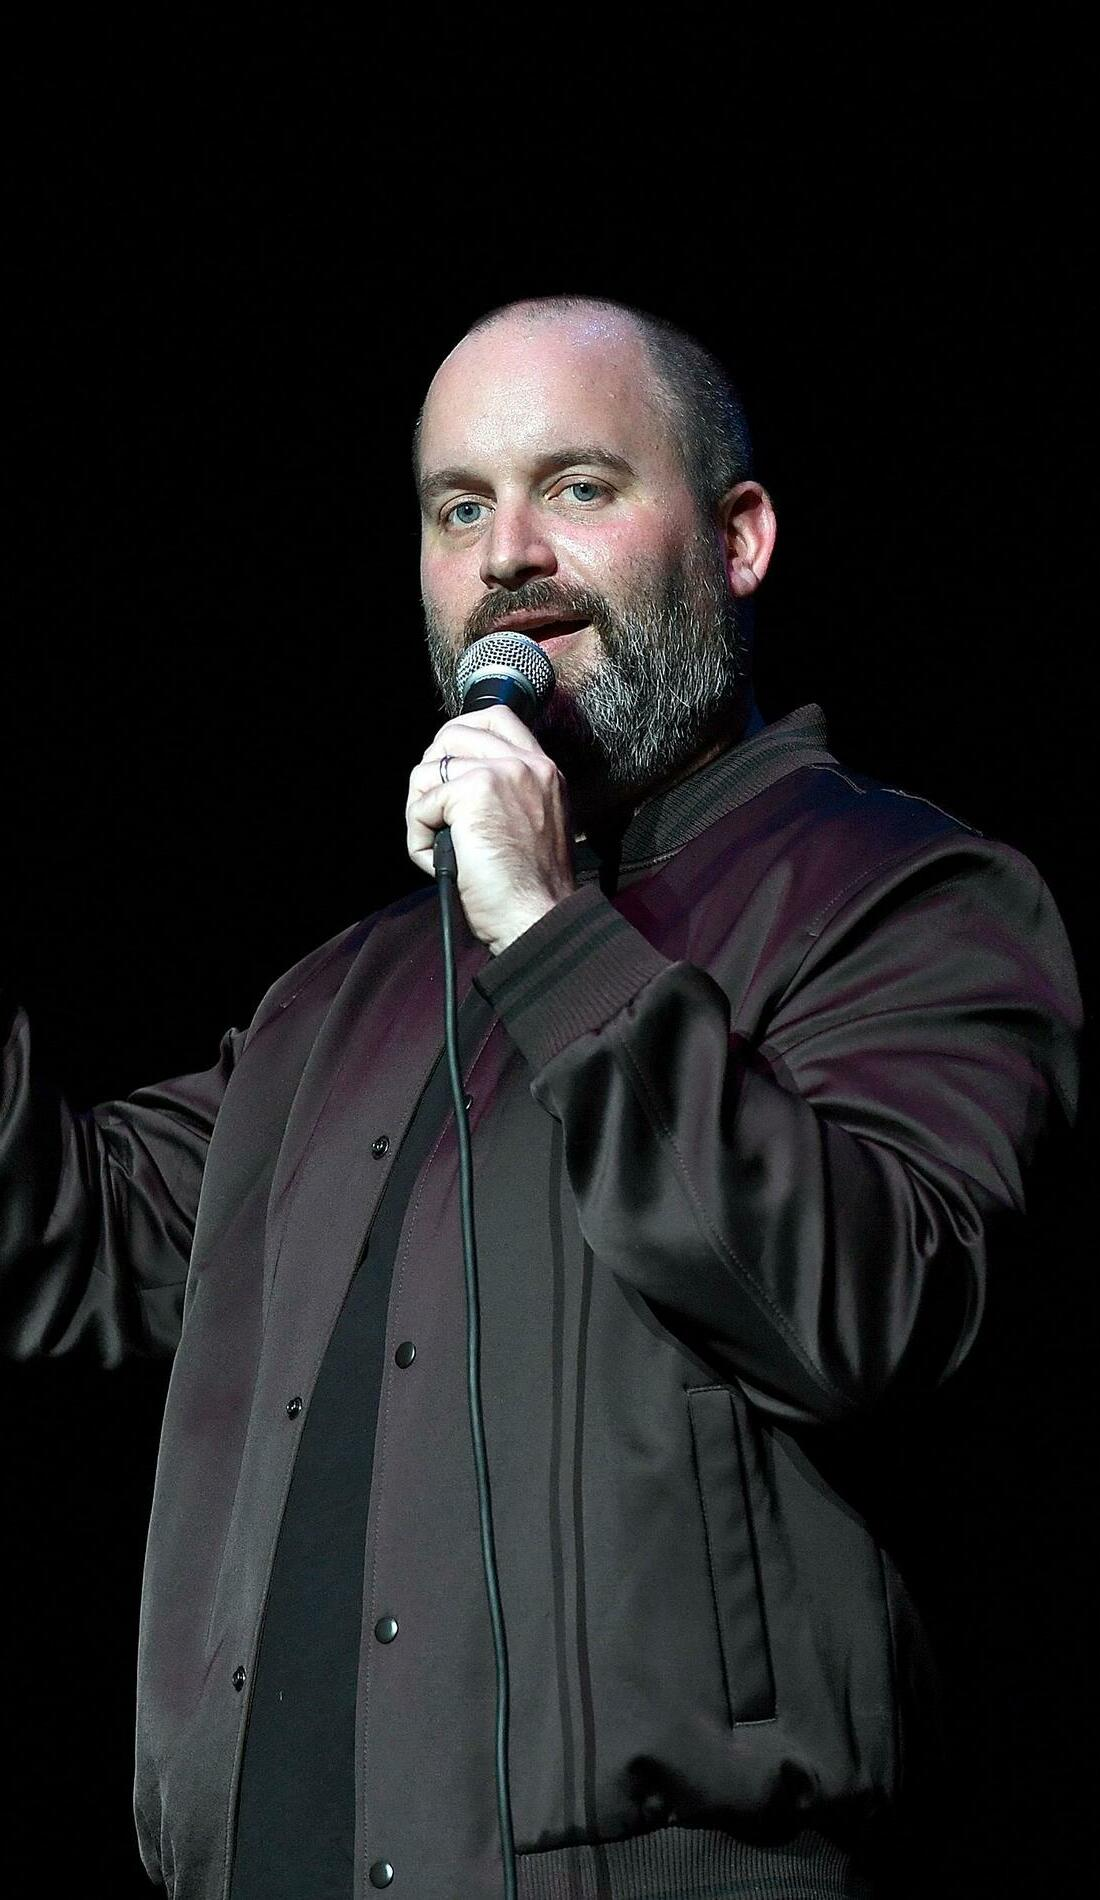 A Tom Segura live event